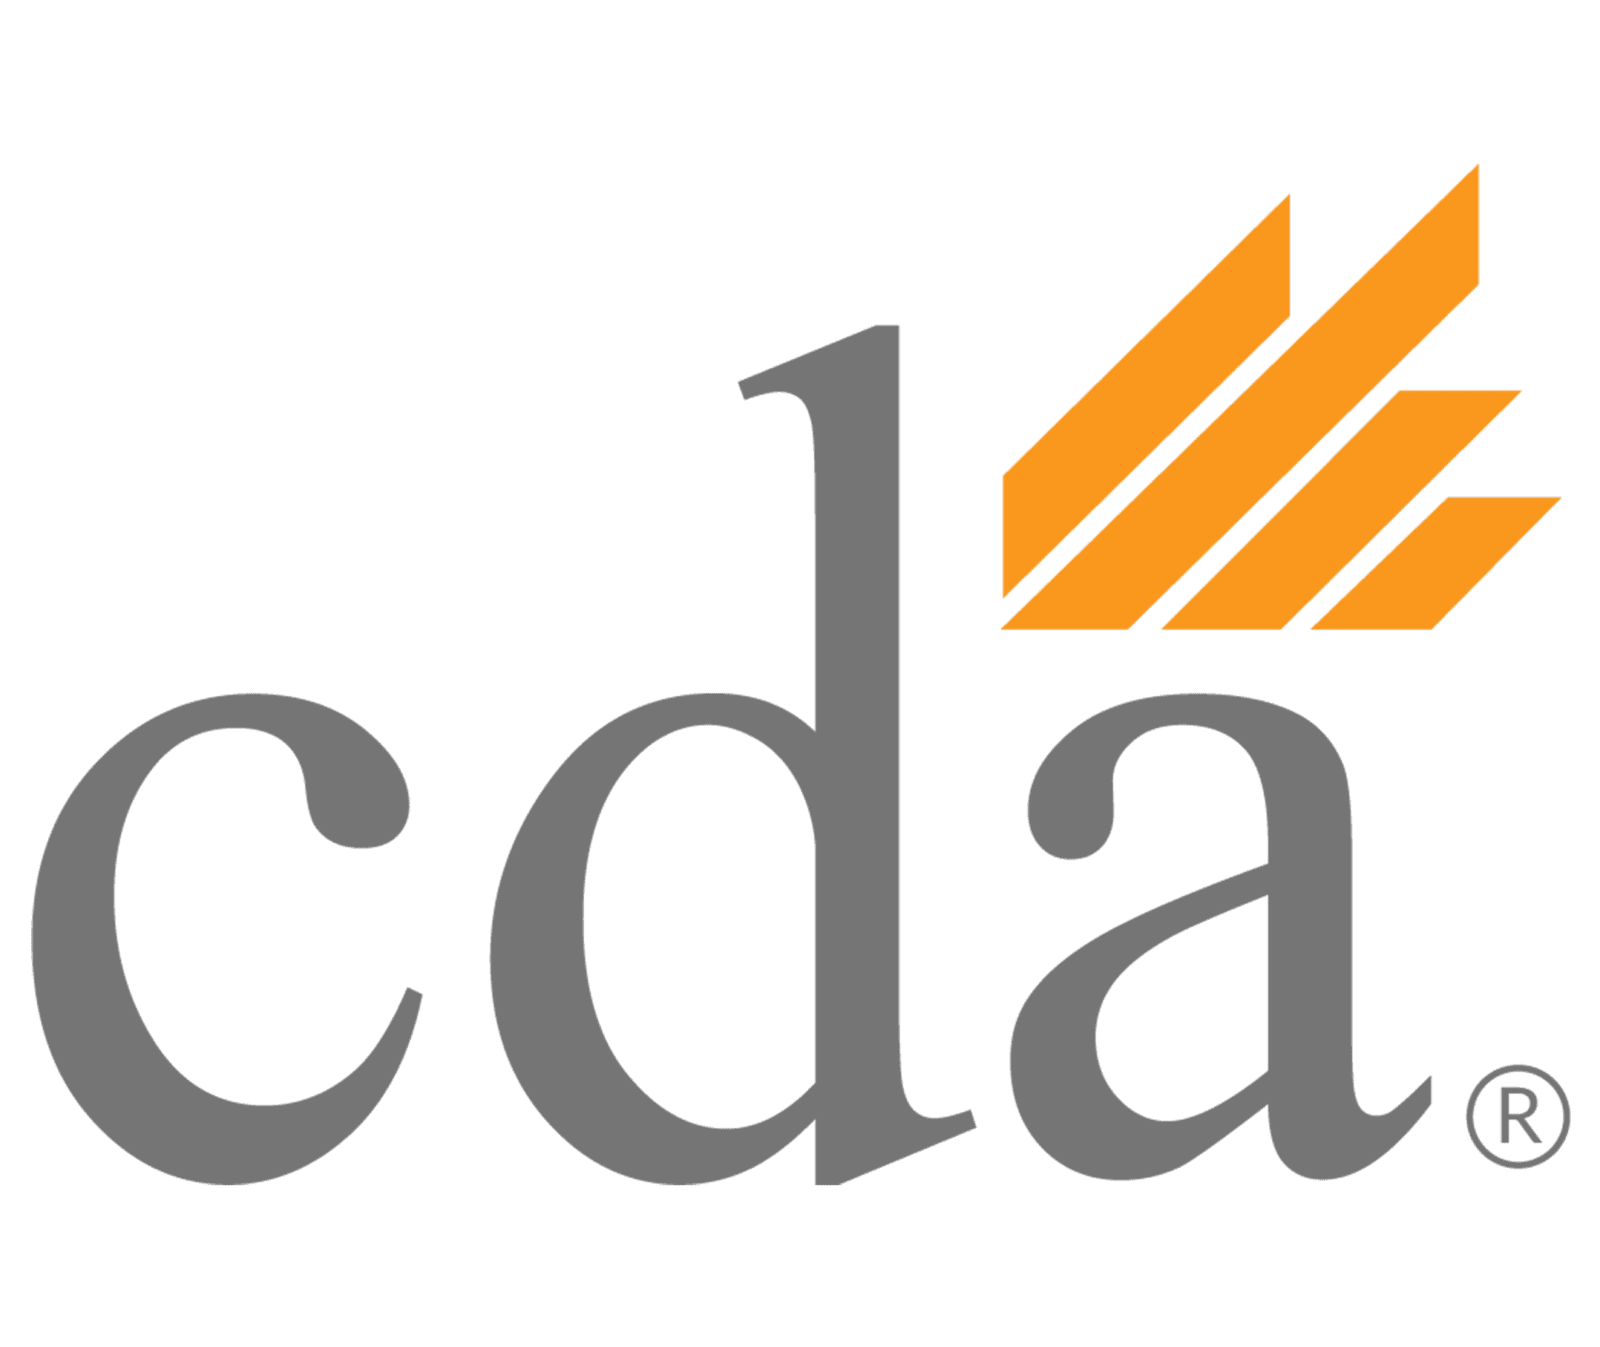 cda california dental association logo